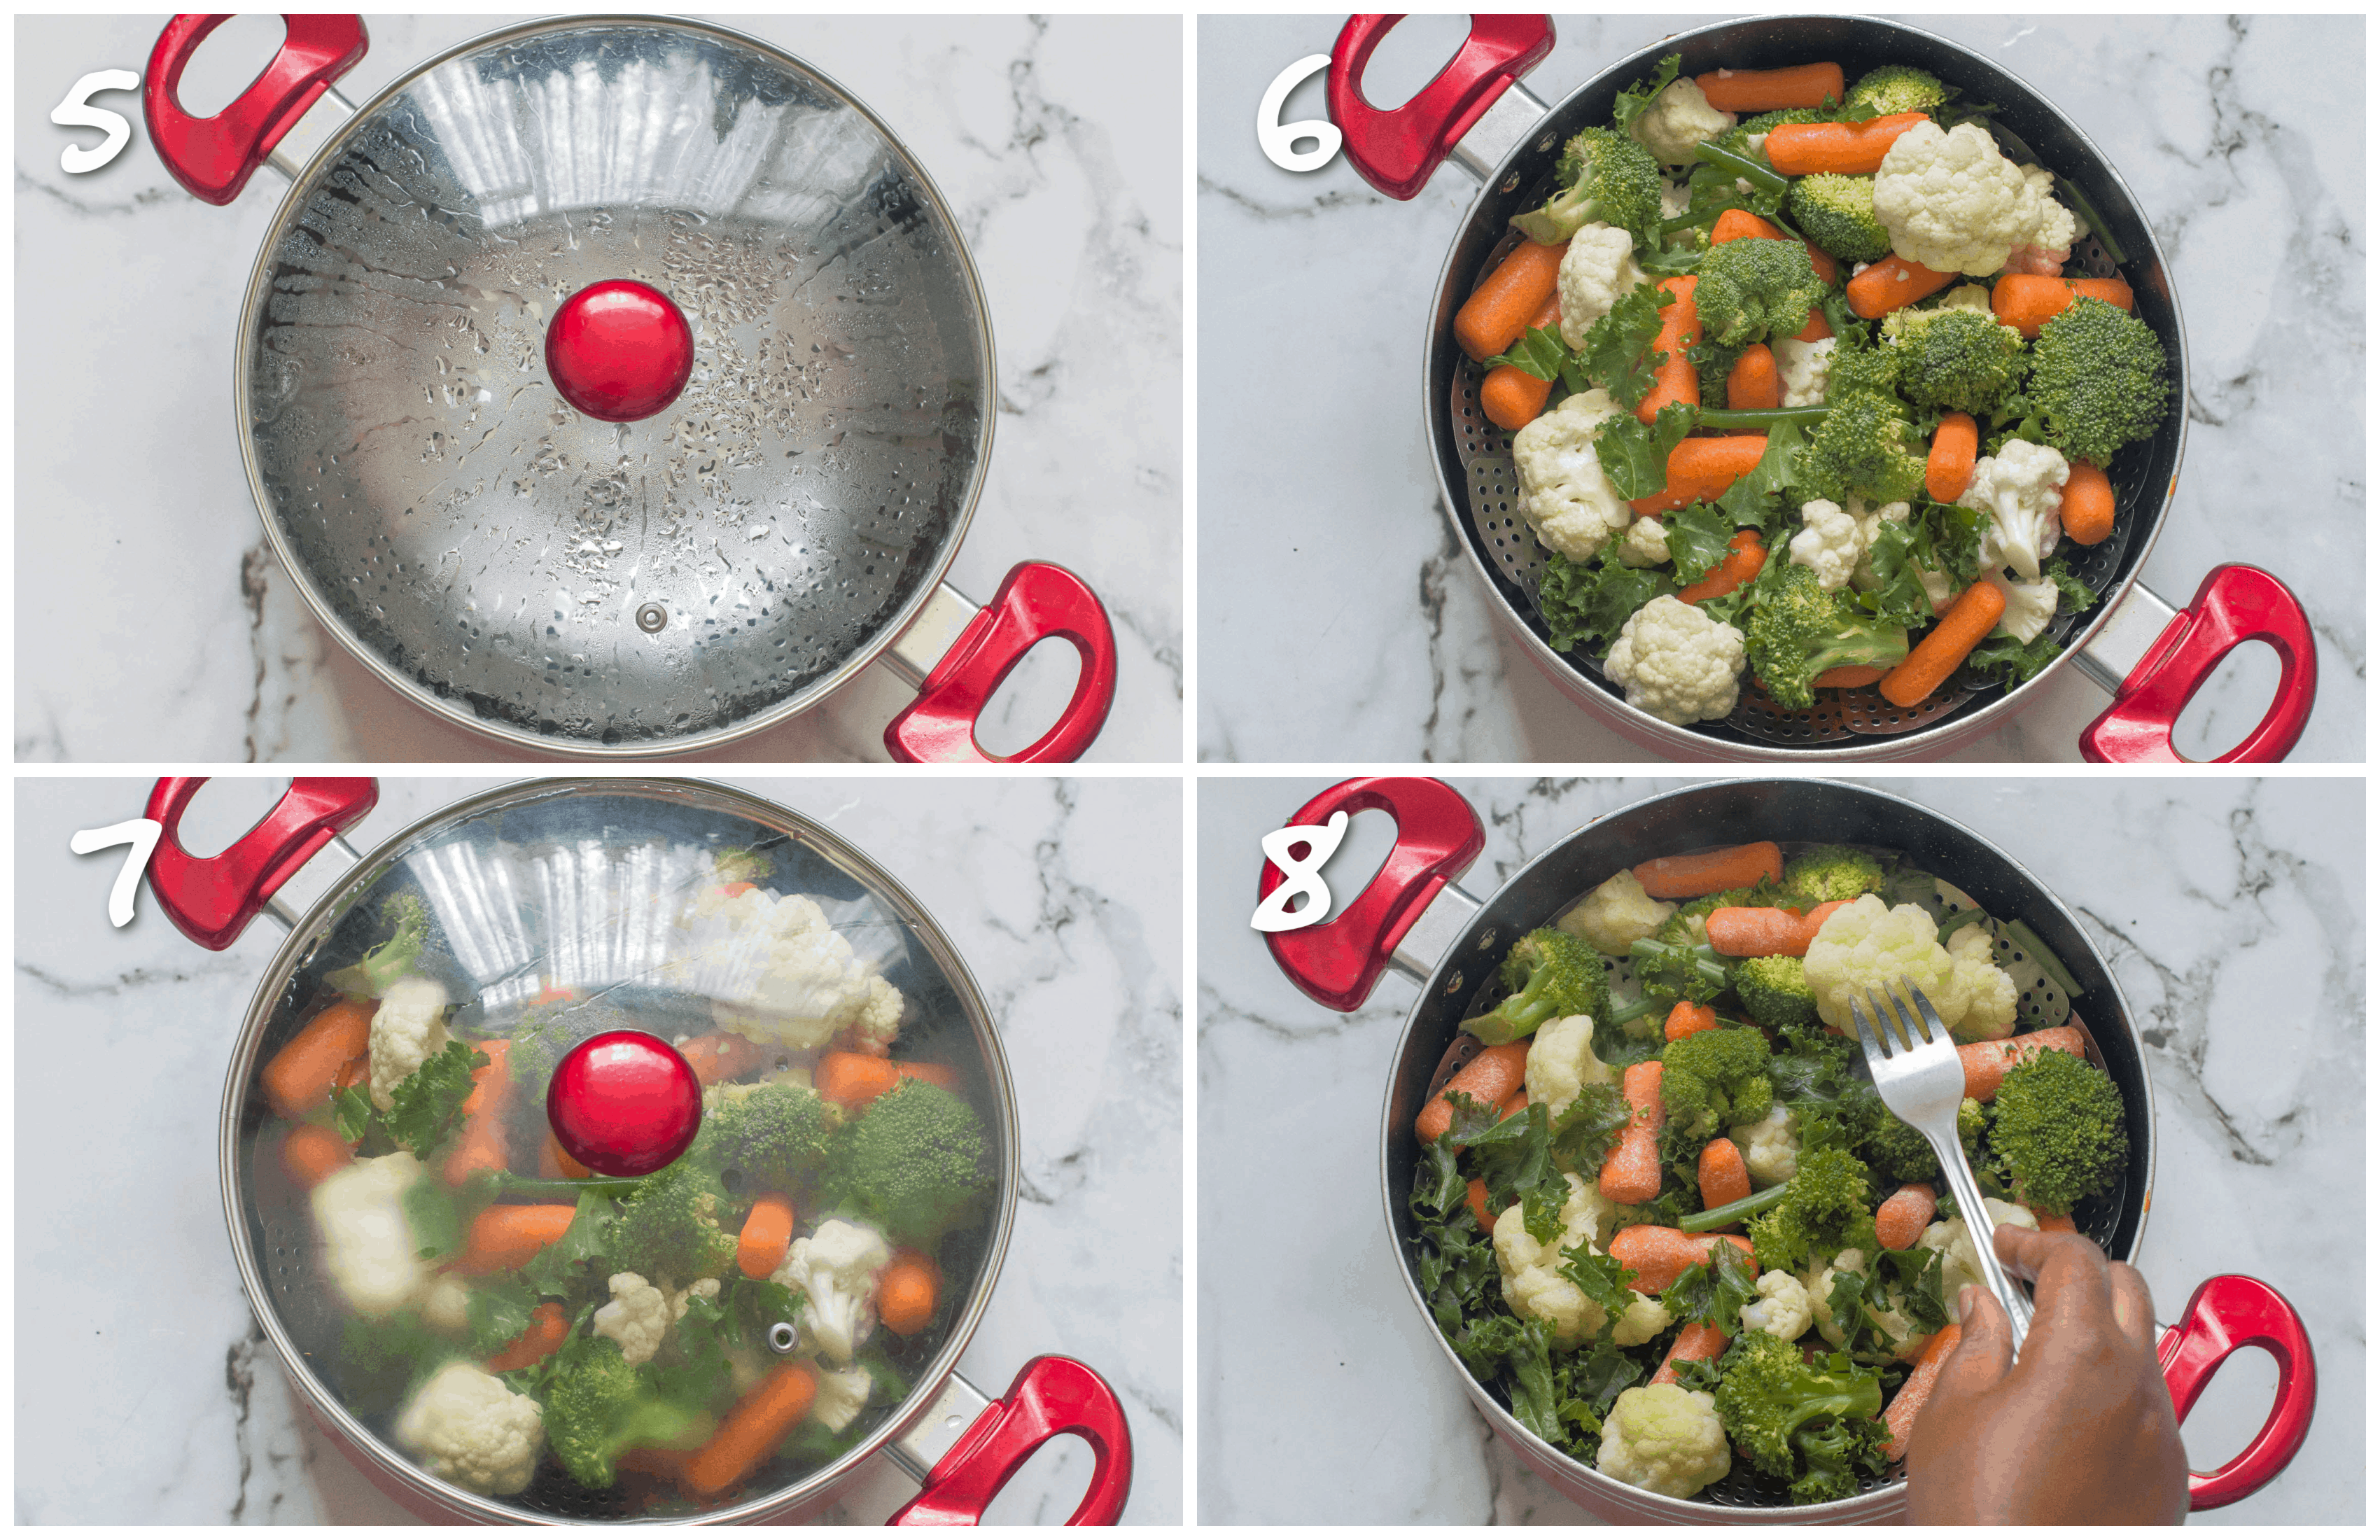 steps 5-8 steaming the vegetables